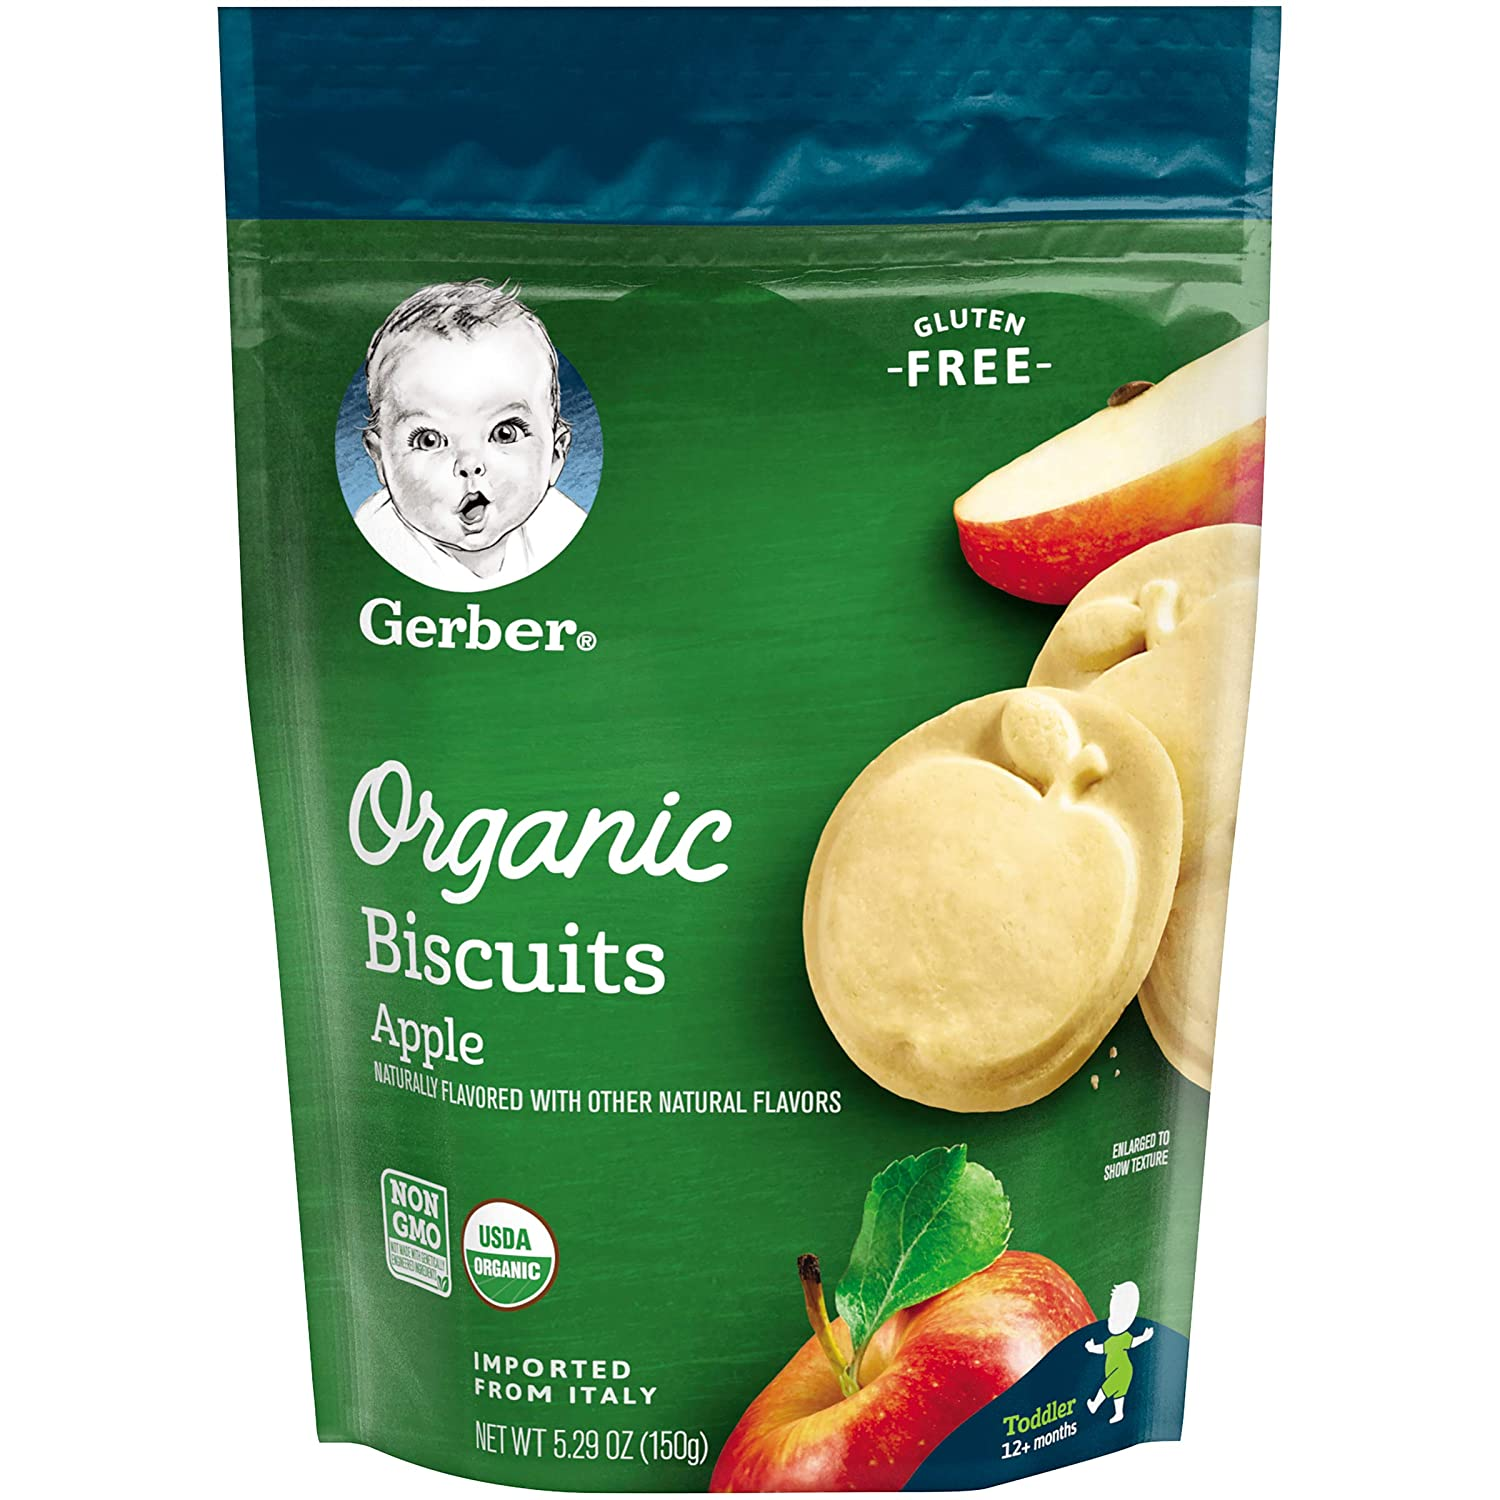 online shopping Gerber Organic Gluten Free Apple oz 2021 autumn and winter new 5.29 Biscuits